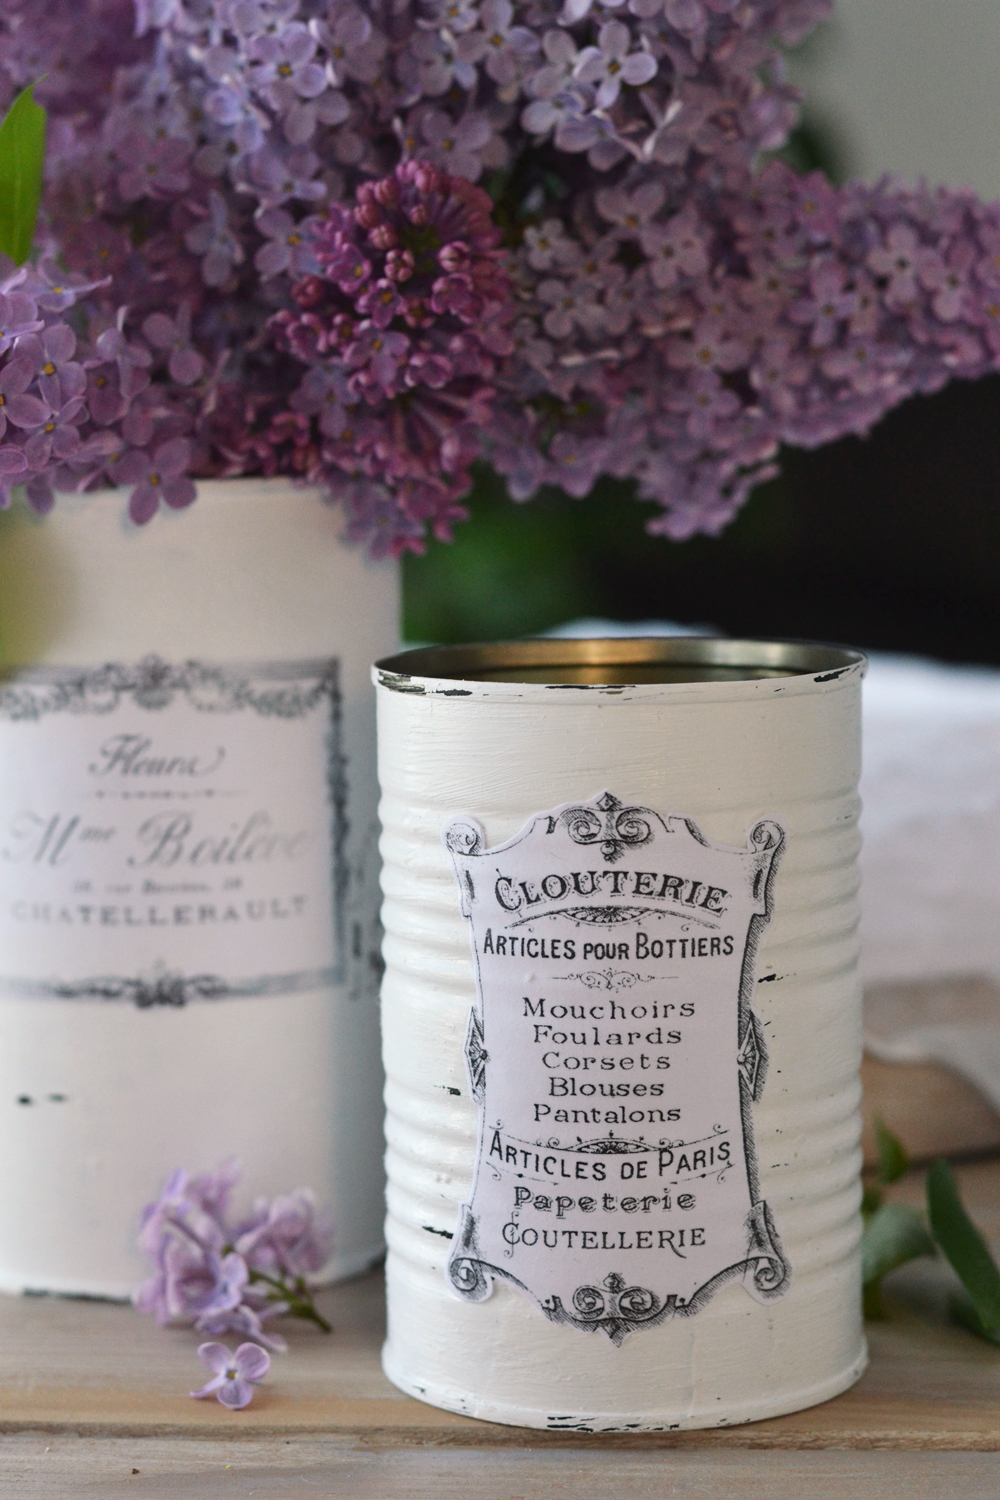 DIY Vintage French Recycled Tin Cans & free printable - by Dreams Factory for The Graphics Fairy #vintage #French #freeprintable #frenchephemera #frenchtypography #diy